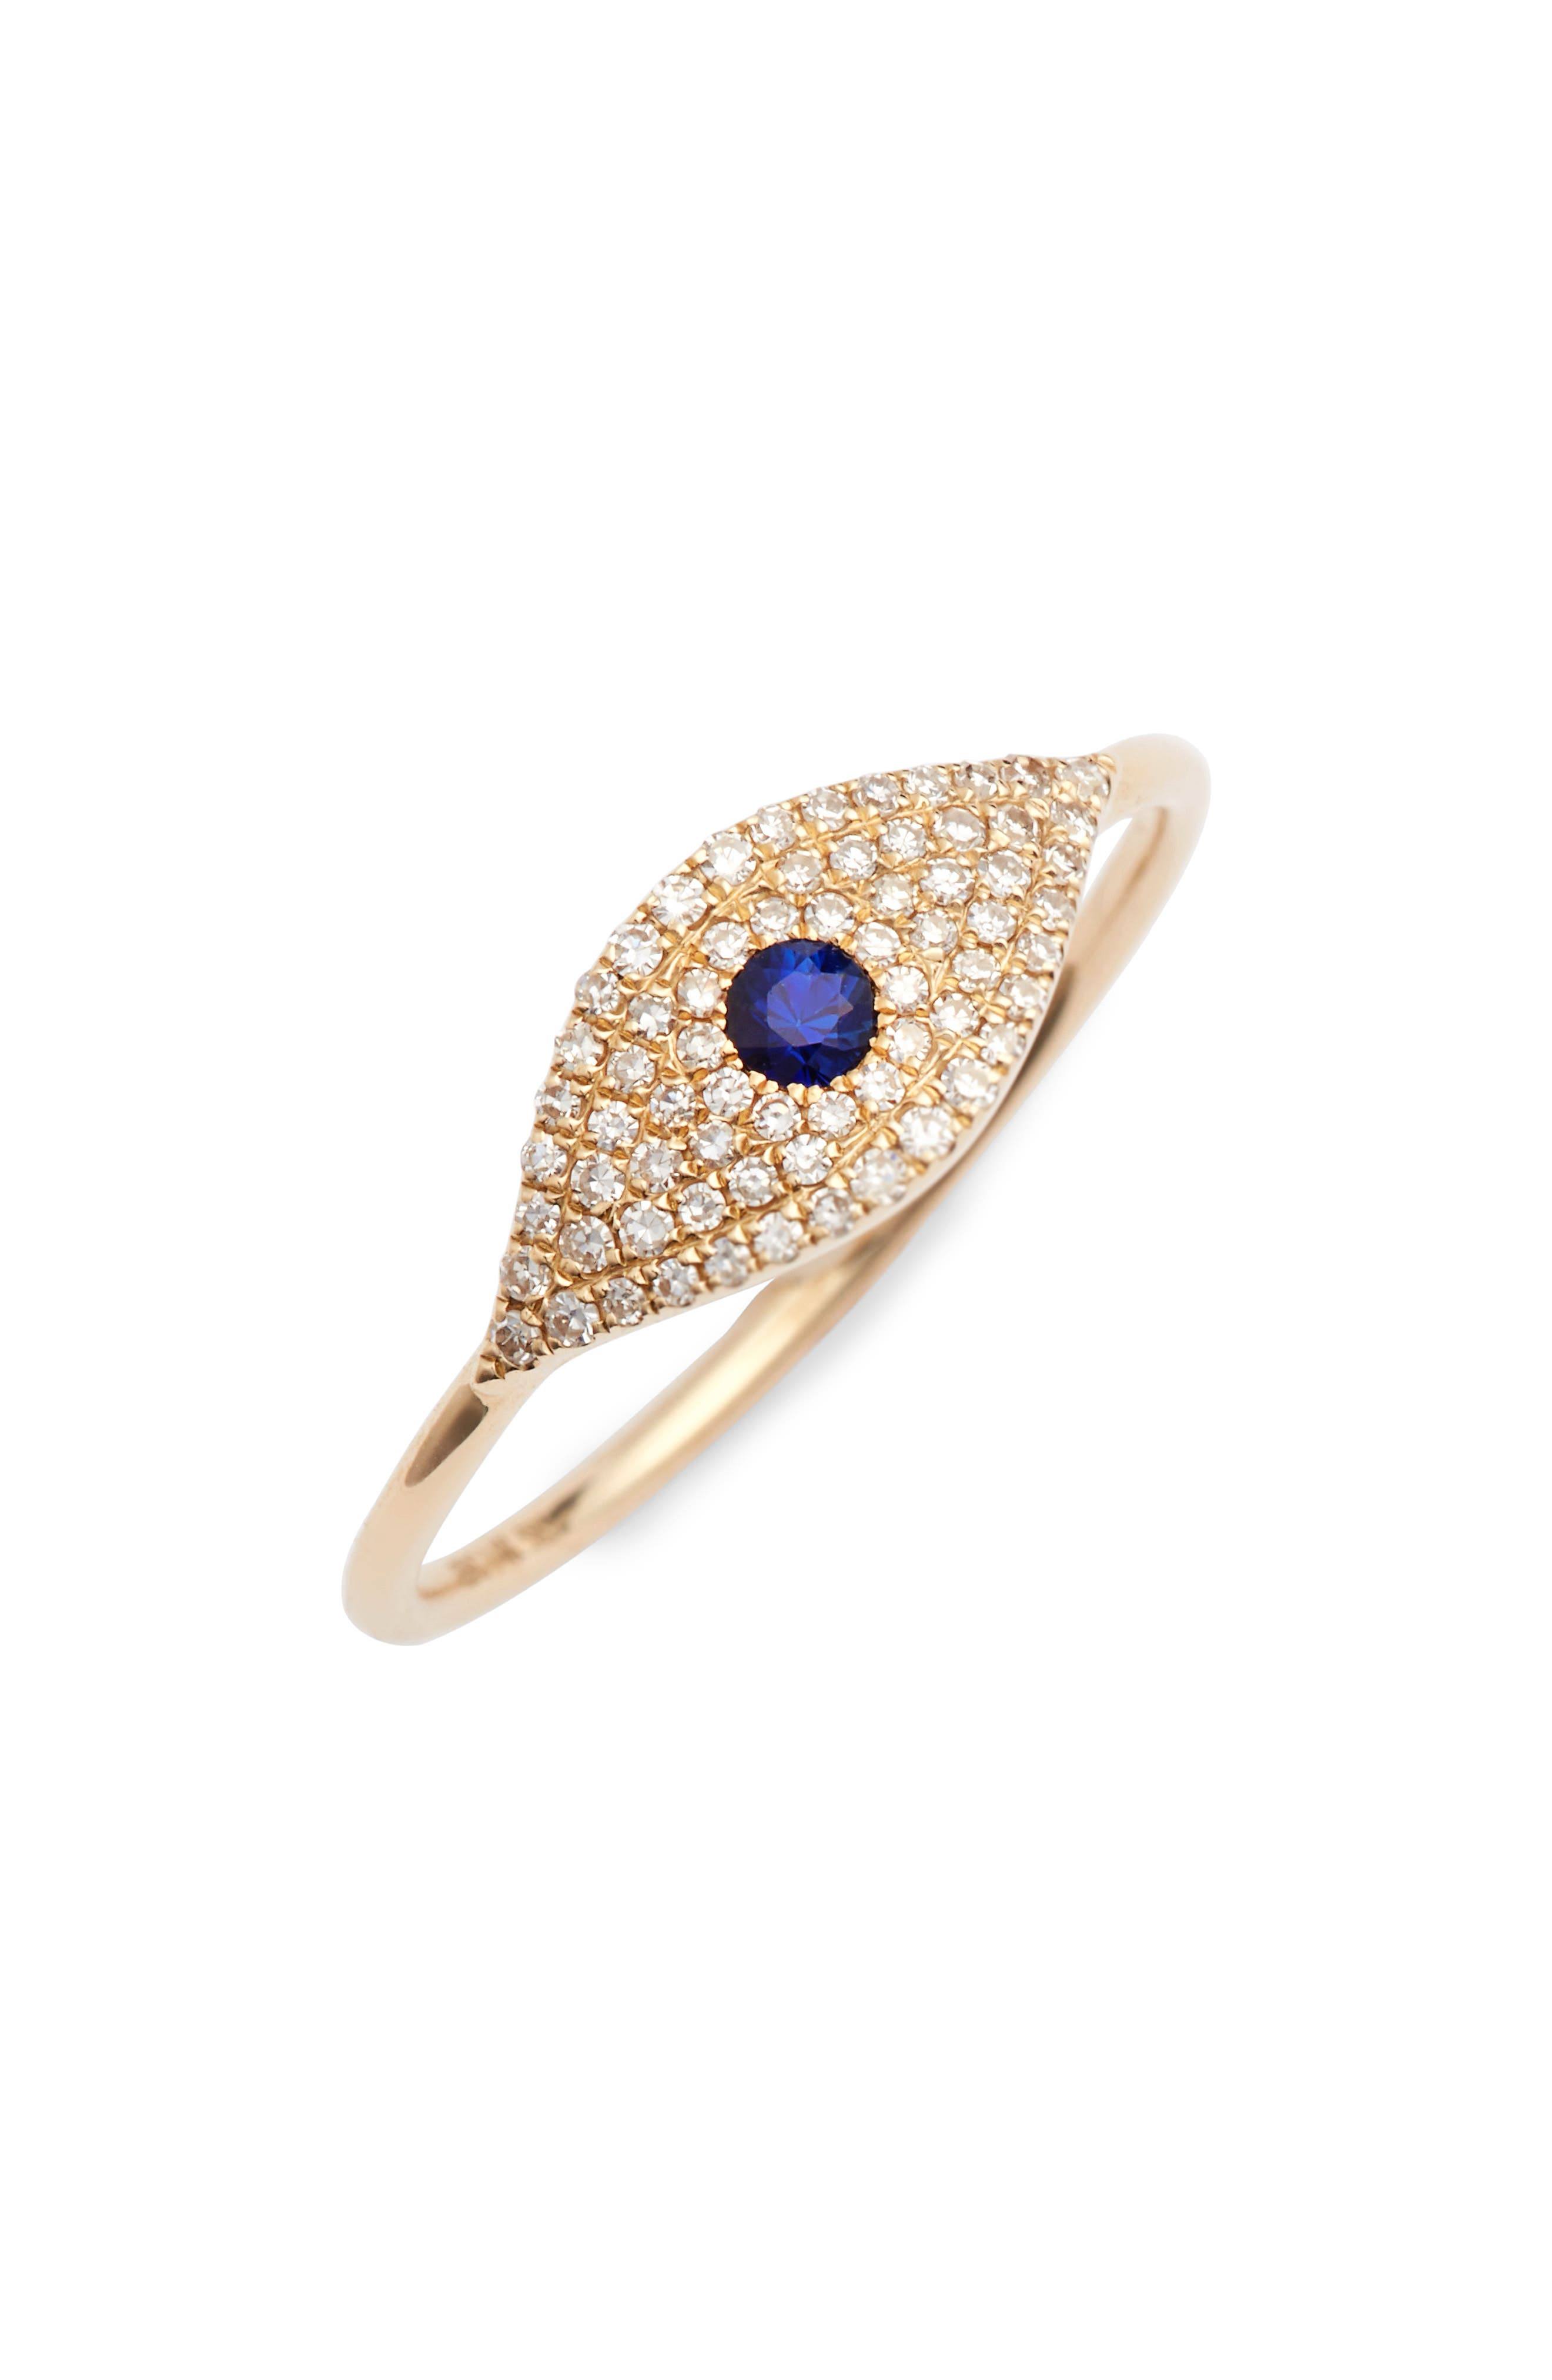 Jumbo Evil Eye Stack Diamond & Sapphire Stack Ring,                         Main,                         color, Yellow Gold/ Sapphire